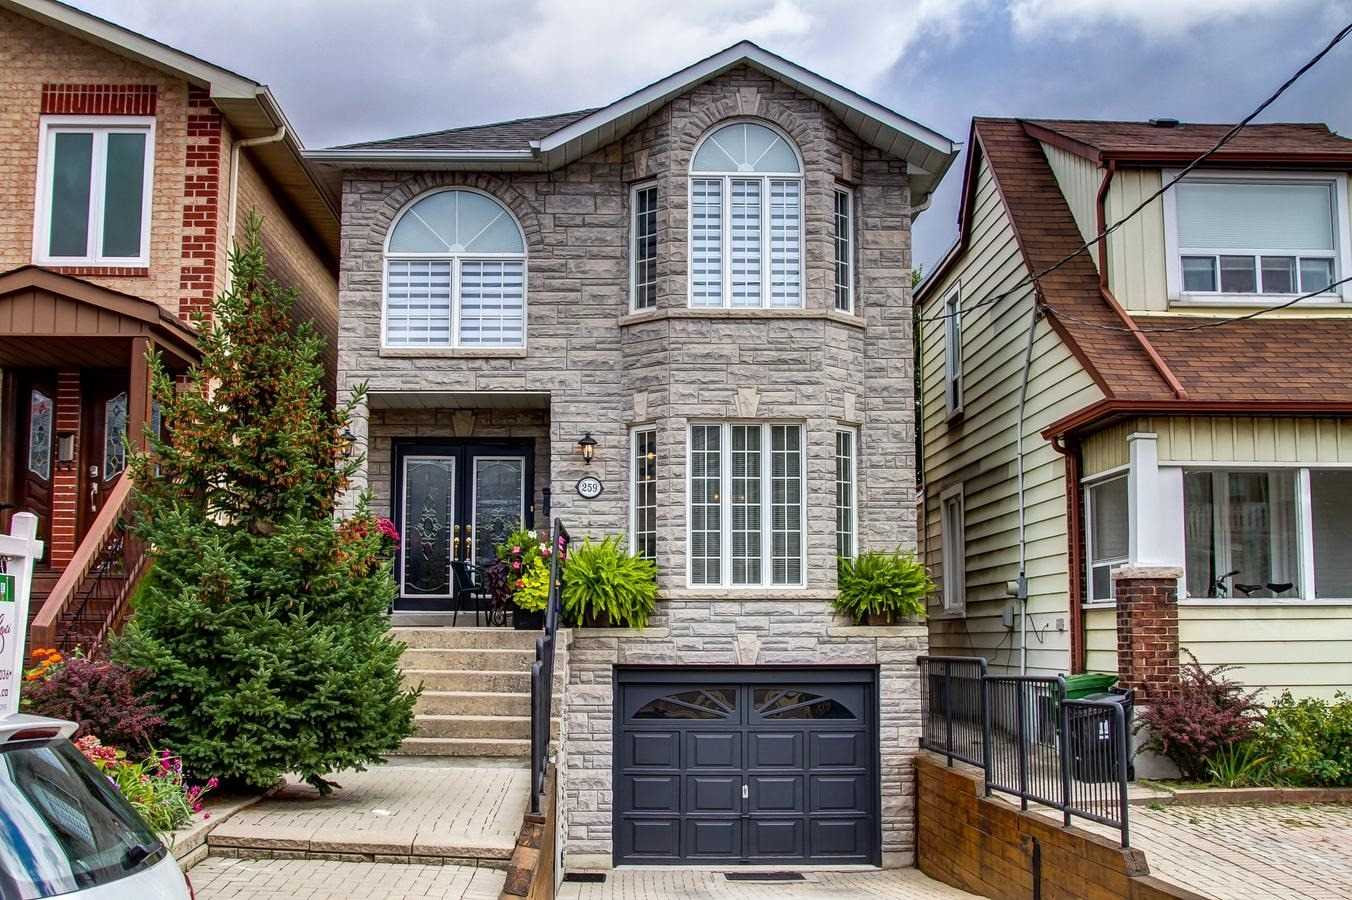 Detached house For Sale In Toronto - 259 Linsmore Cres, Toronto, Ontario, Canada M4J4L6 , 4 Bedrooms Bedrooms, ,4 BathroomsBathrooms,Detached,For Sale,Linsmore